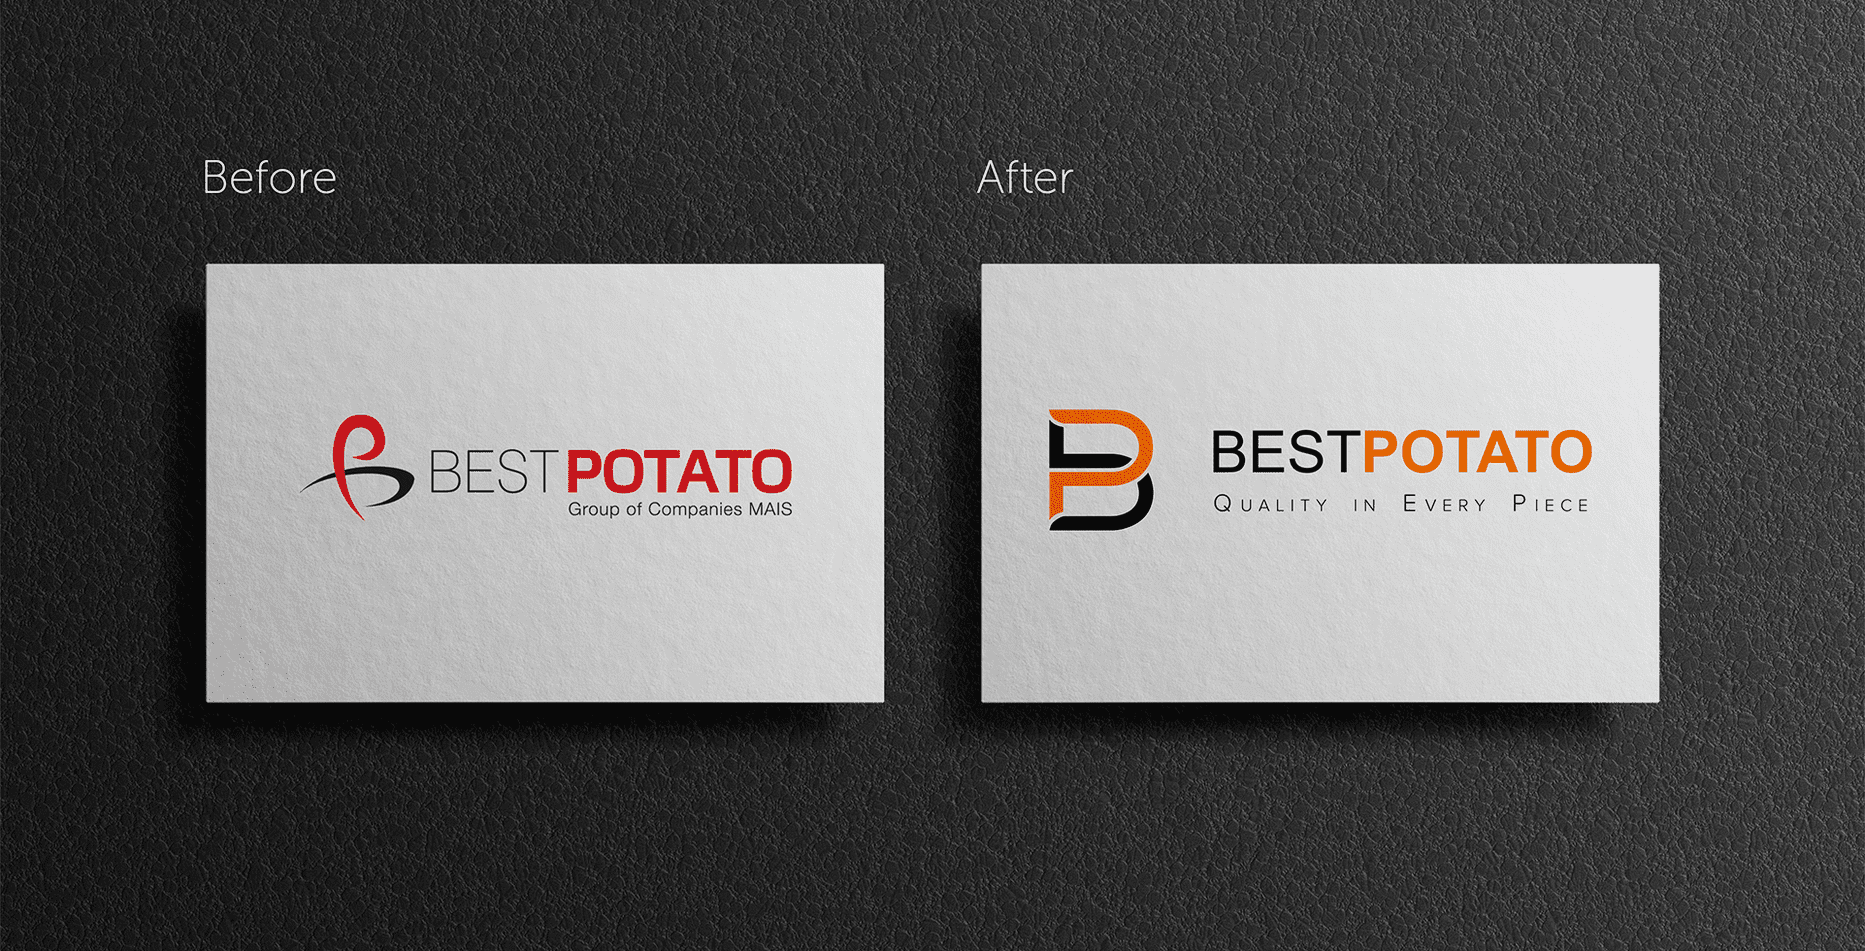 Case: brand positioning and logo redesign for Best Potato — Rubarb - Image - 3